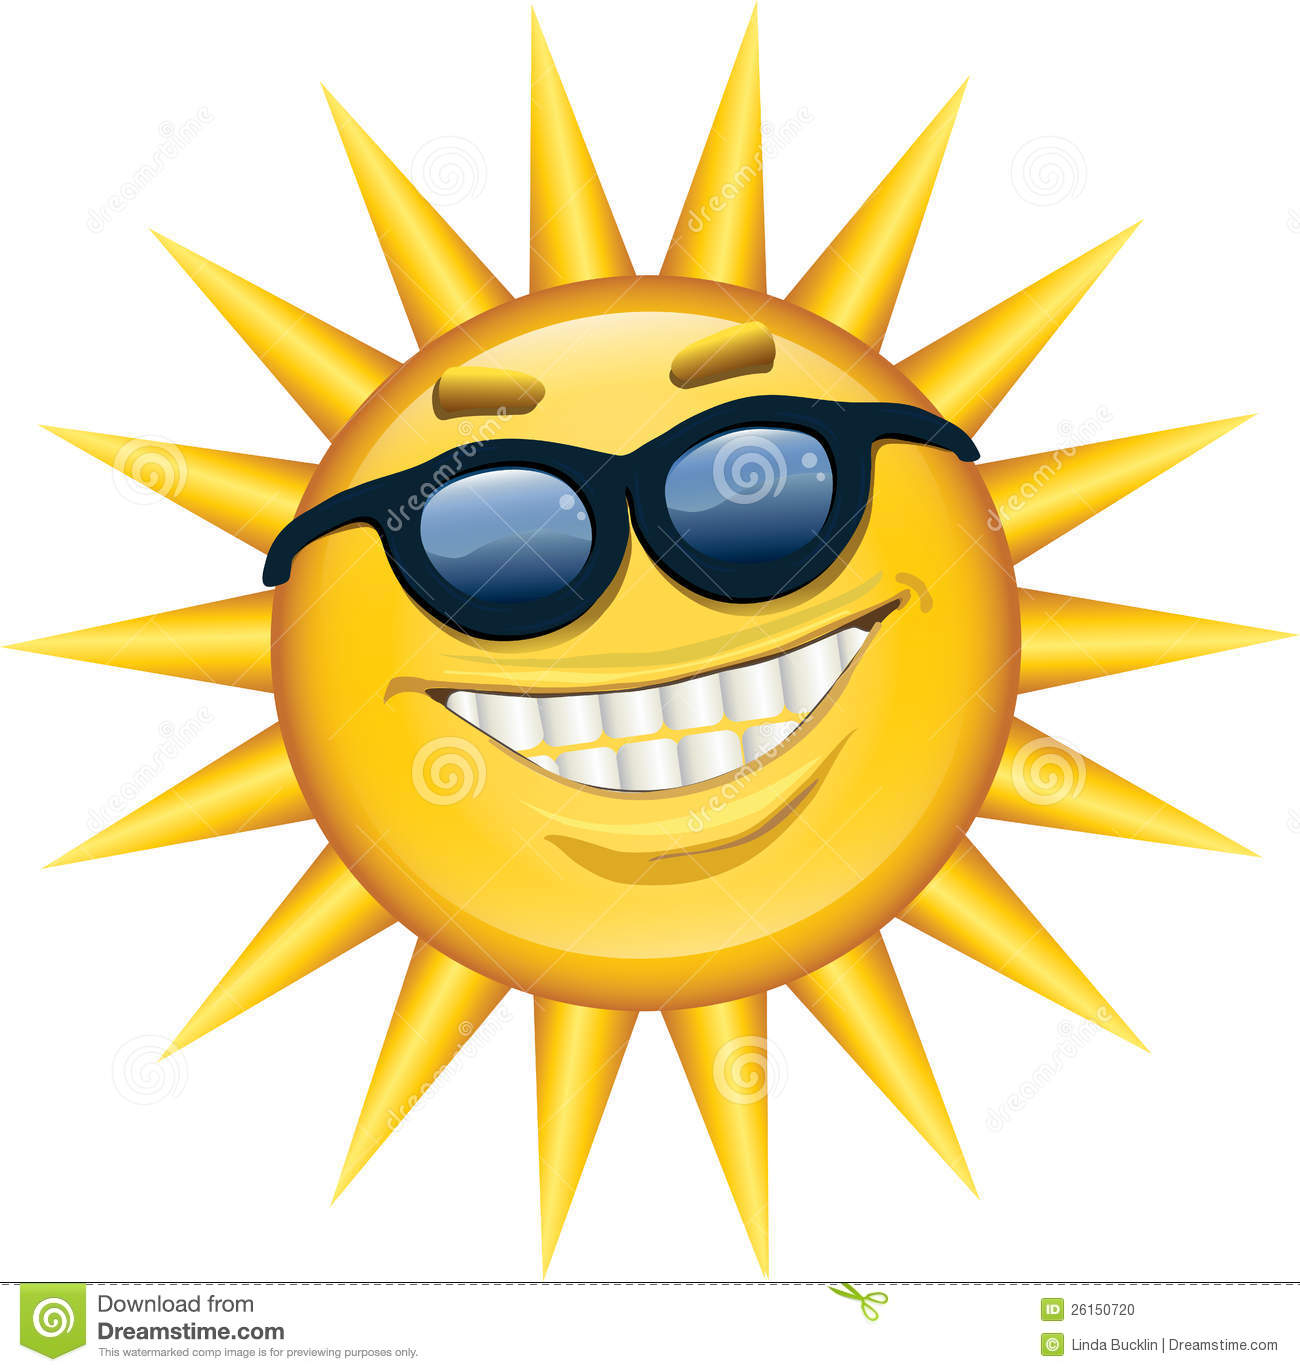 Sonnenschirm Blau Sunshine Smile Stock Photo - Image: 26150720